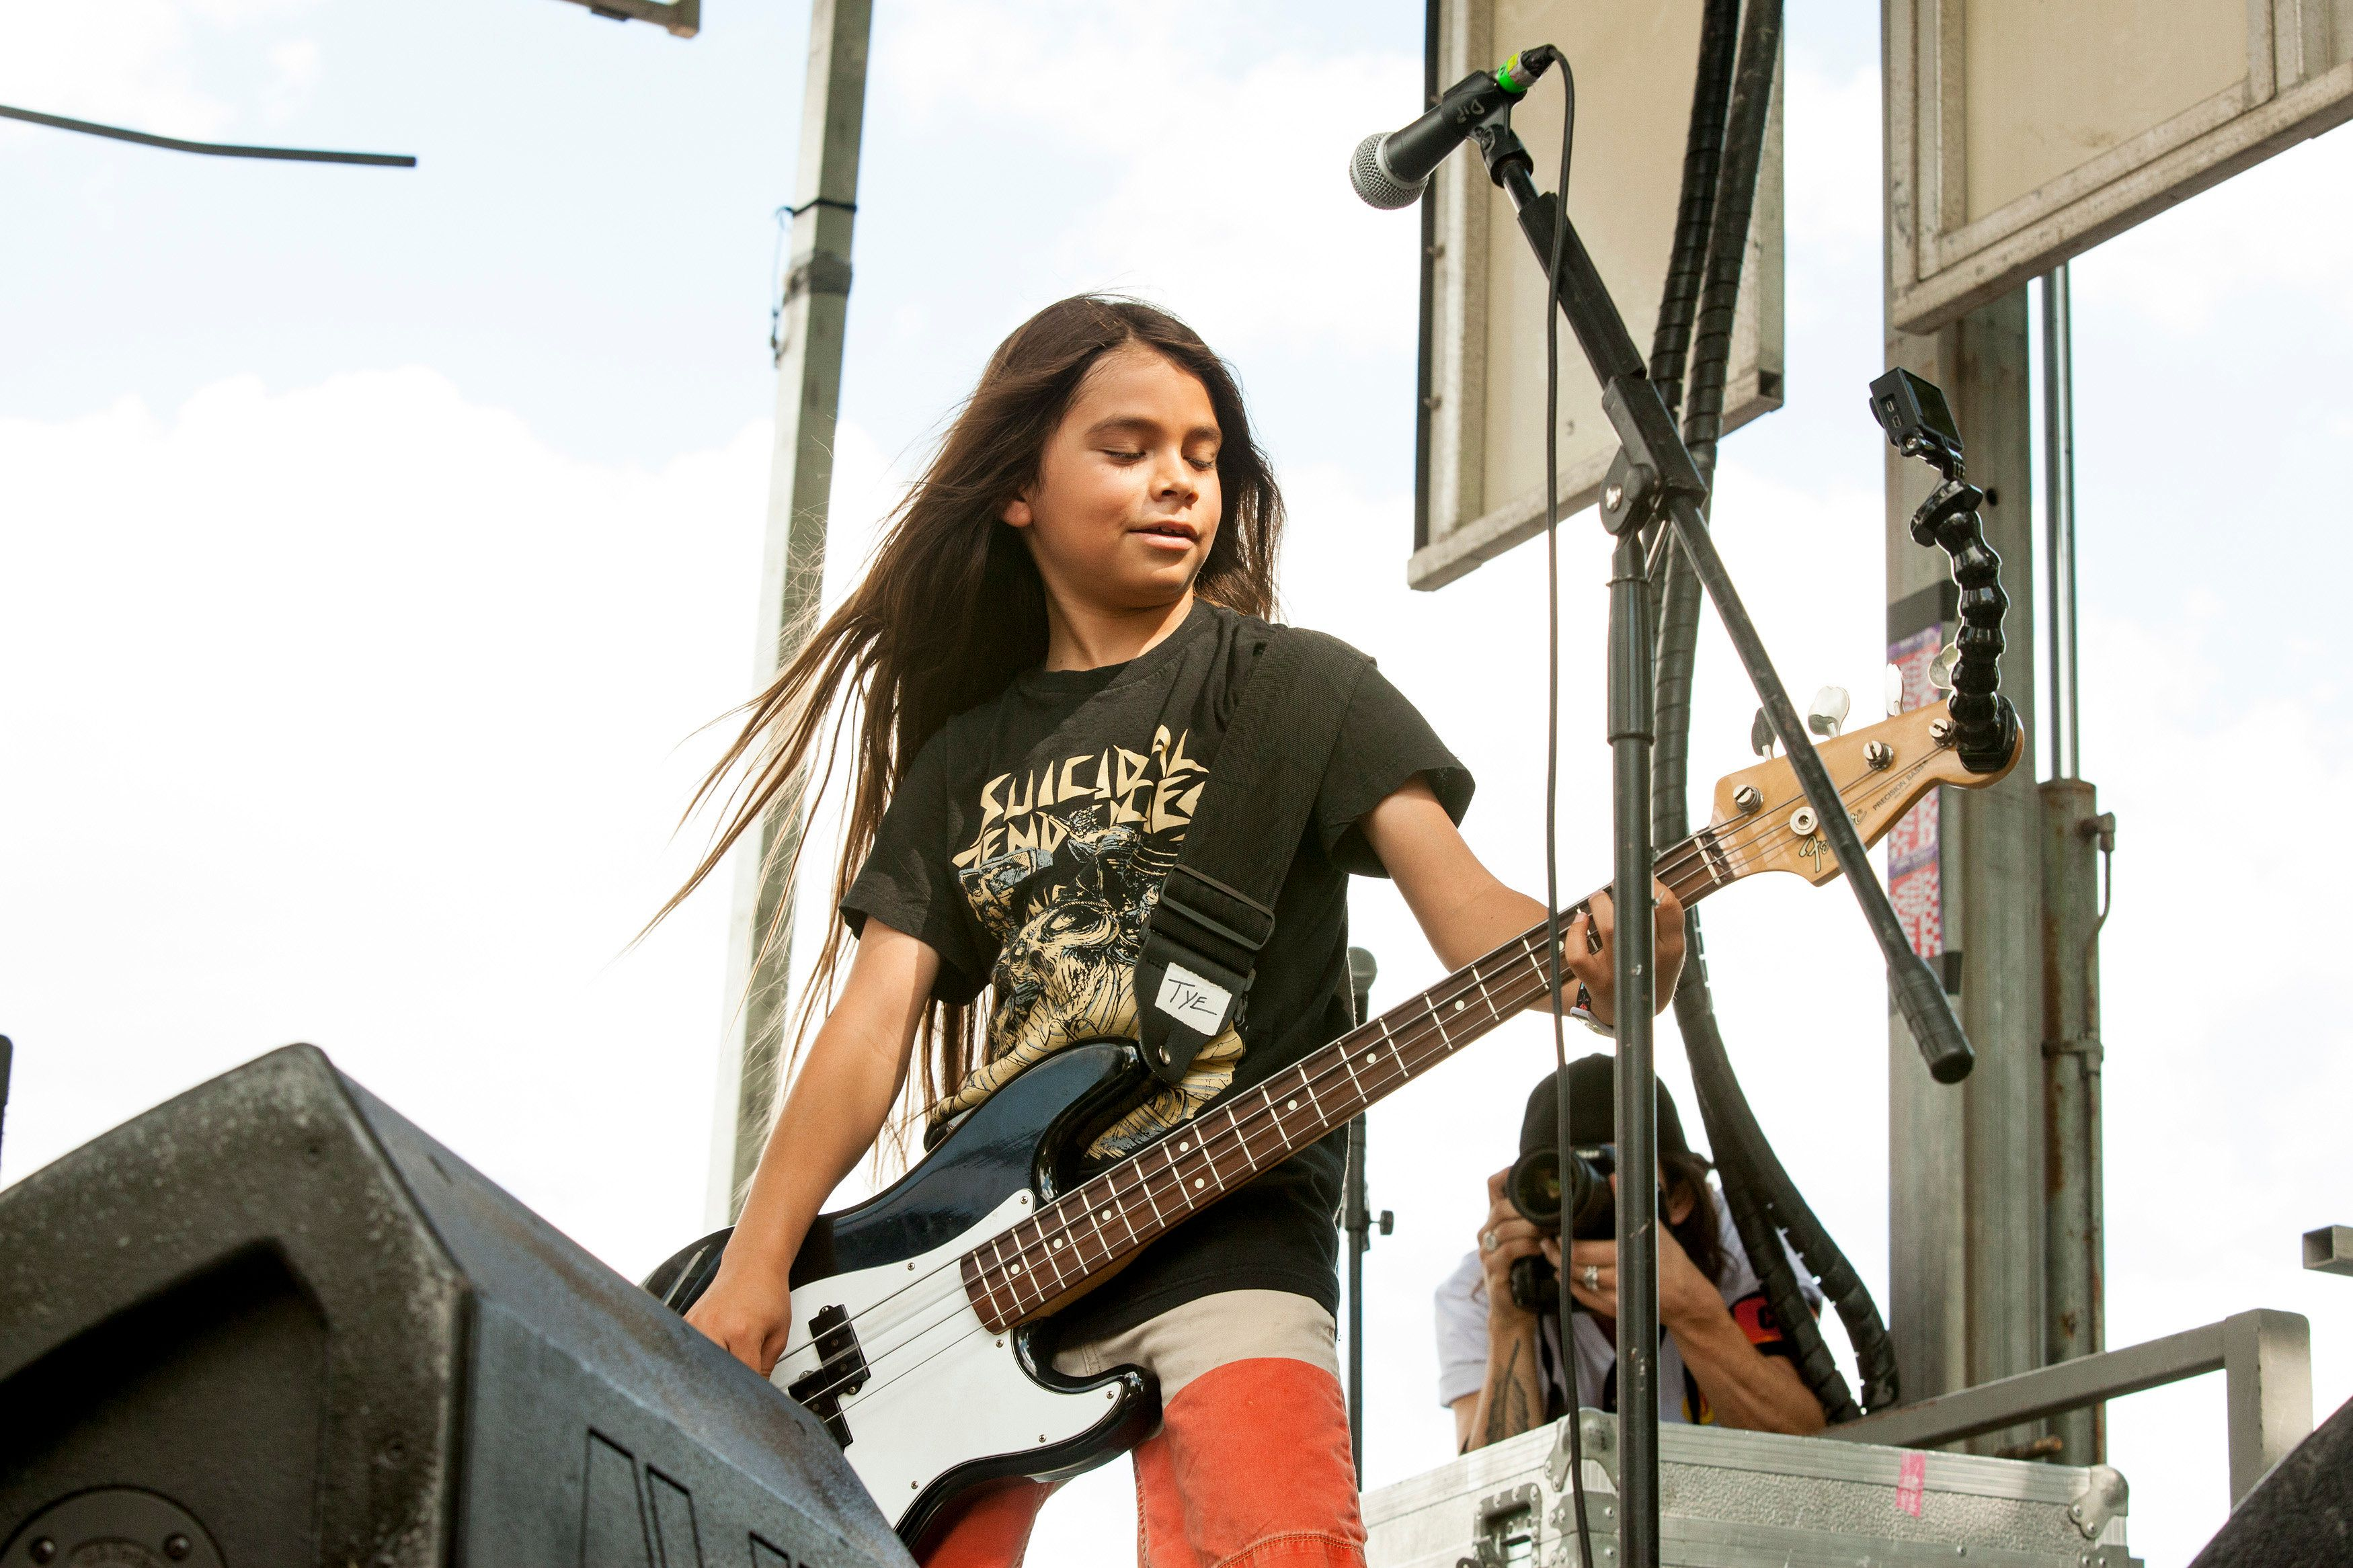 CHICAGO, IL - AUGUST 01:  Tye Trujillo of The Helmets performs during 2015 Lollapalooza Day Two at Grant Park on August 1, 2015 in Chicago, Illinois.  (Photo by Barry Brecheisen/WireImage)